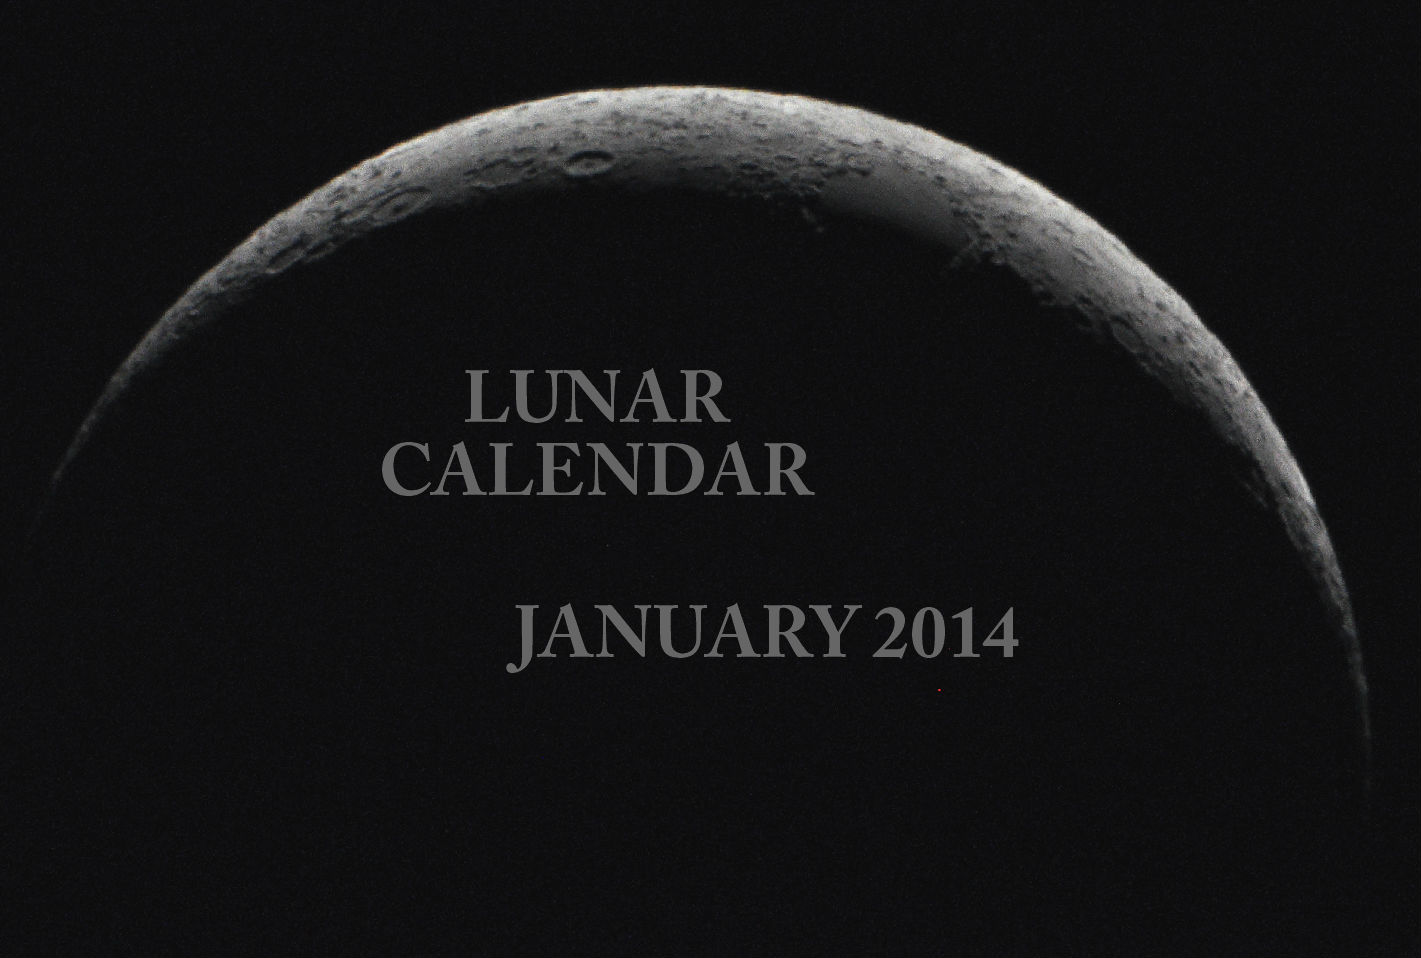 LUNAR CALENDAR FOR JANUARY 2014.